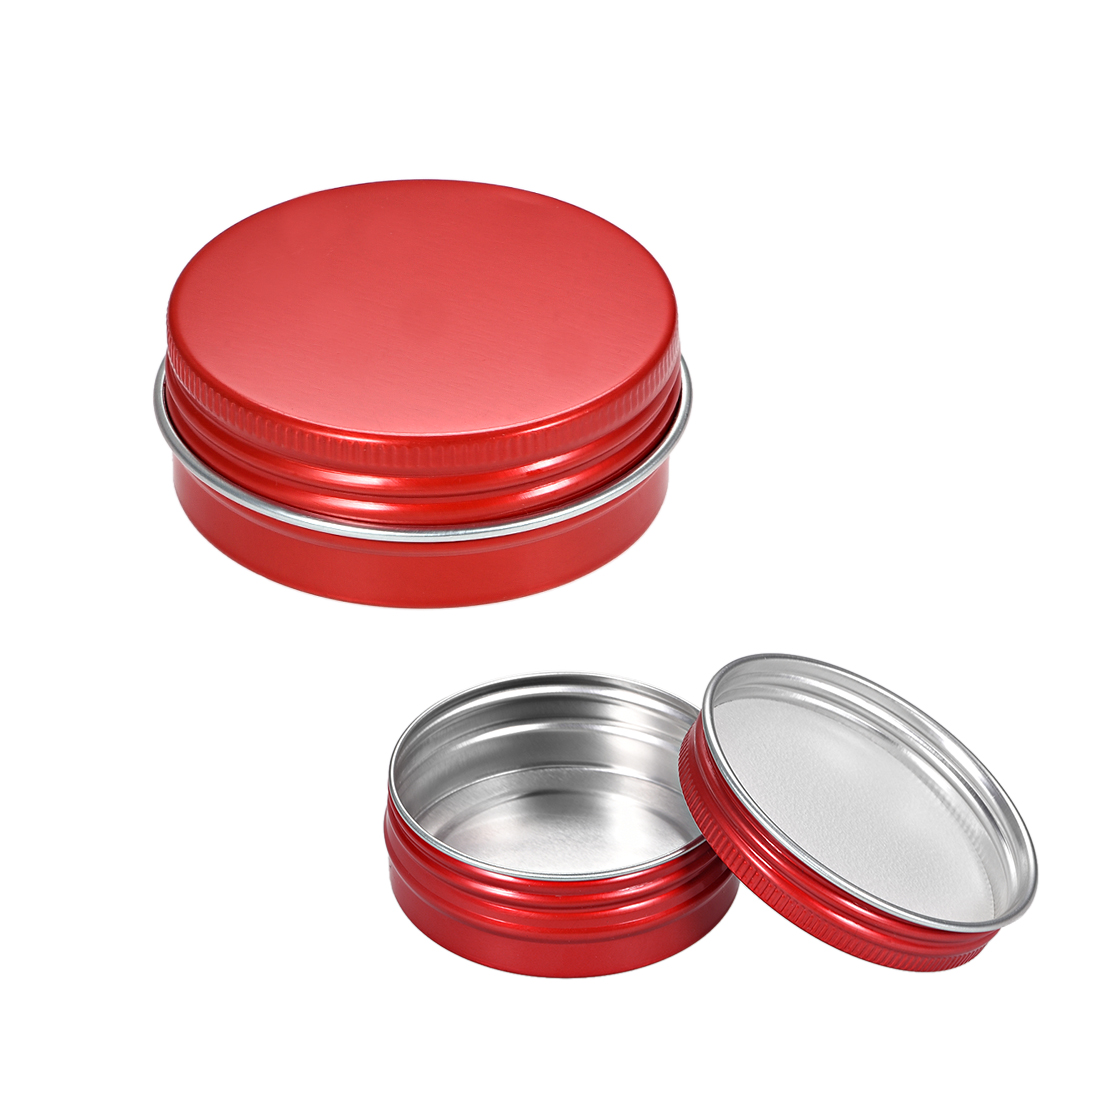 1 oz Round Aluminum Cans Tin Can Screw Top Metal Lid Containers Red 30ml 12pcs